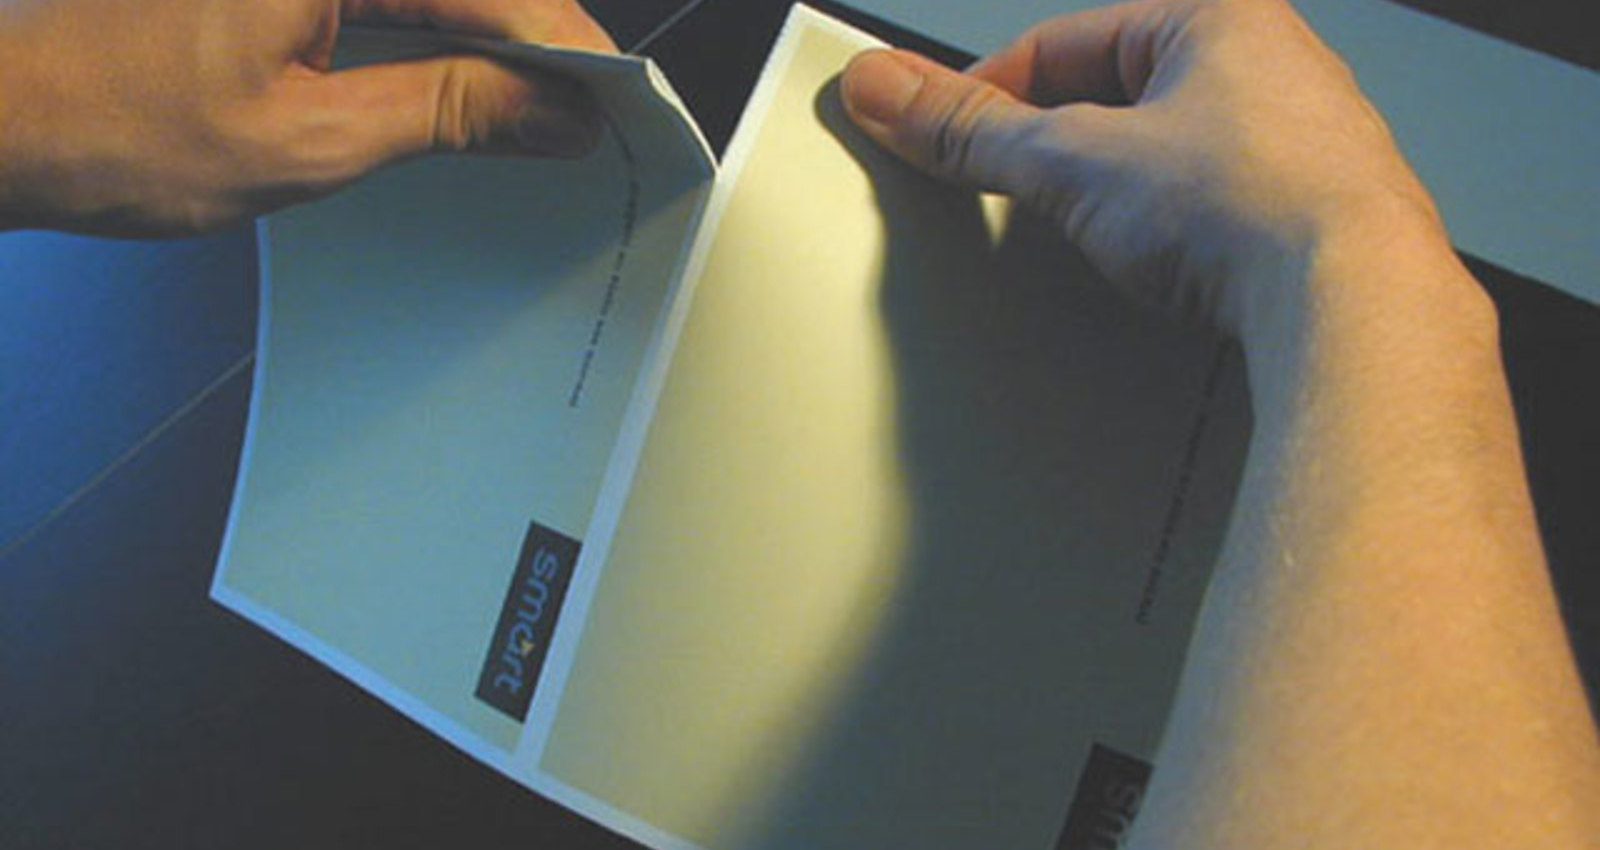 The 2-in-1 brochure